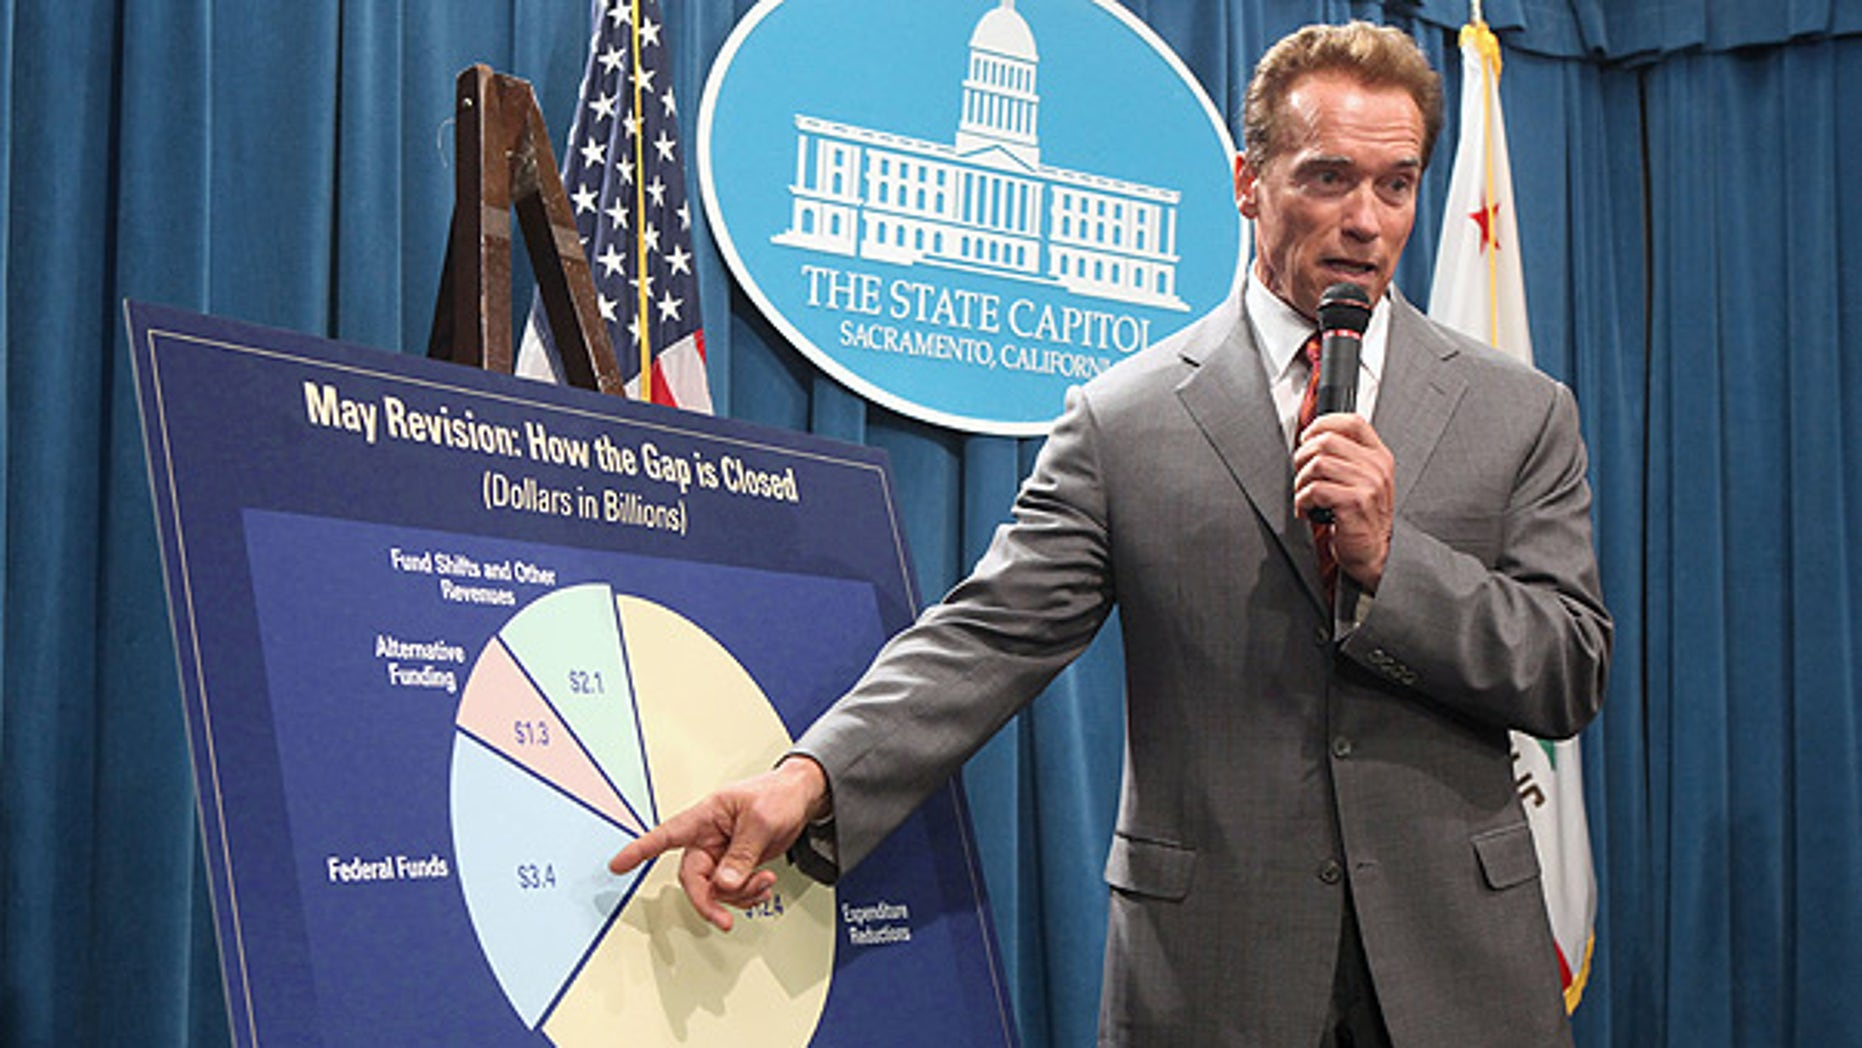 Sept. 1: California Gov. Arnold Schwarzenegger points to a chart showing how his revised budget plan would close a $19 billion budget deficit, in Sacramento.